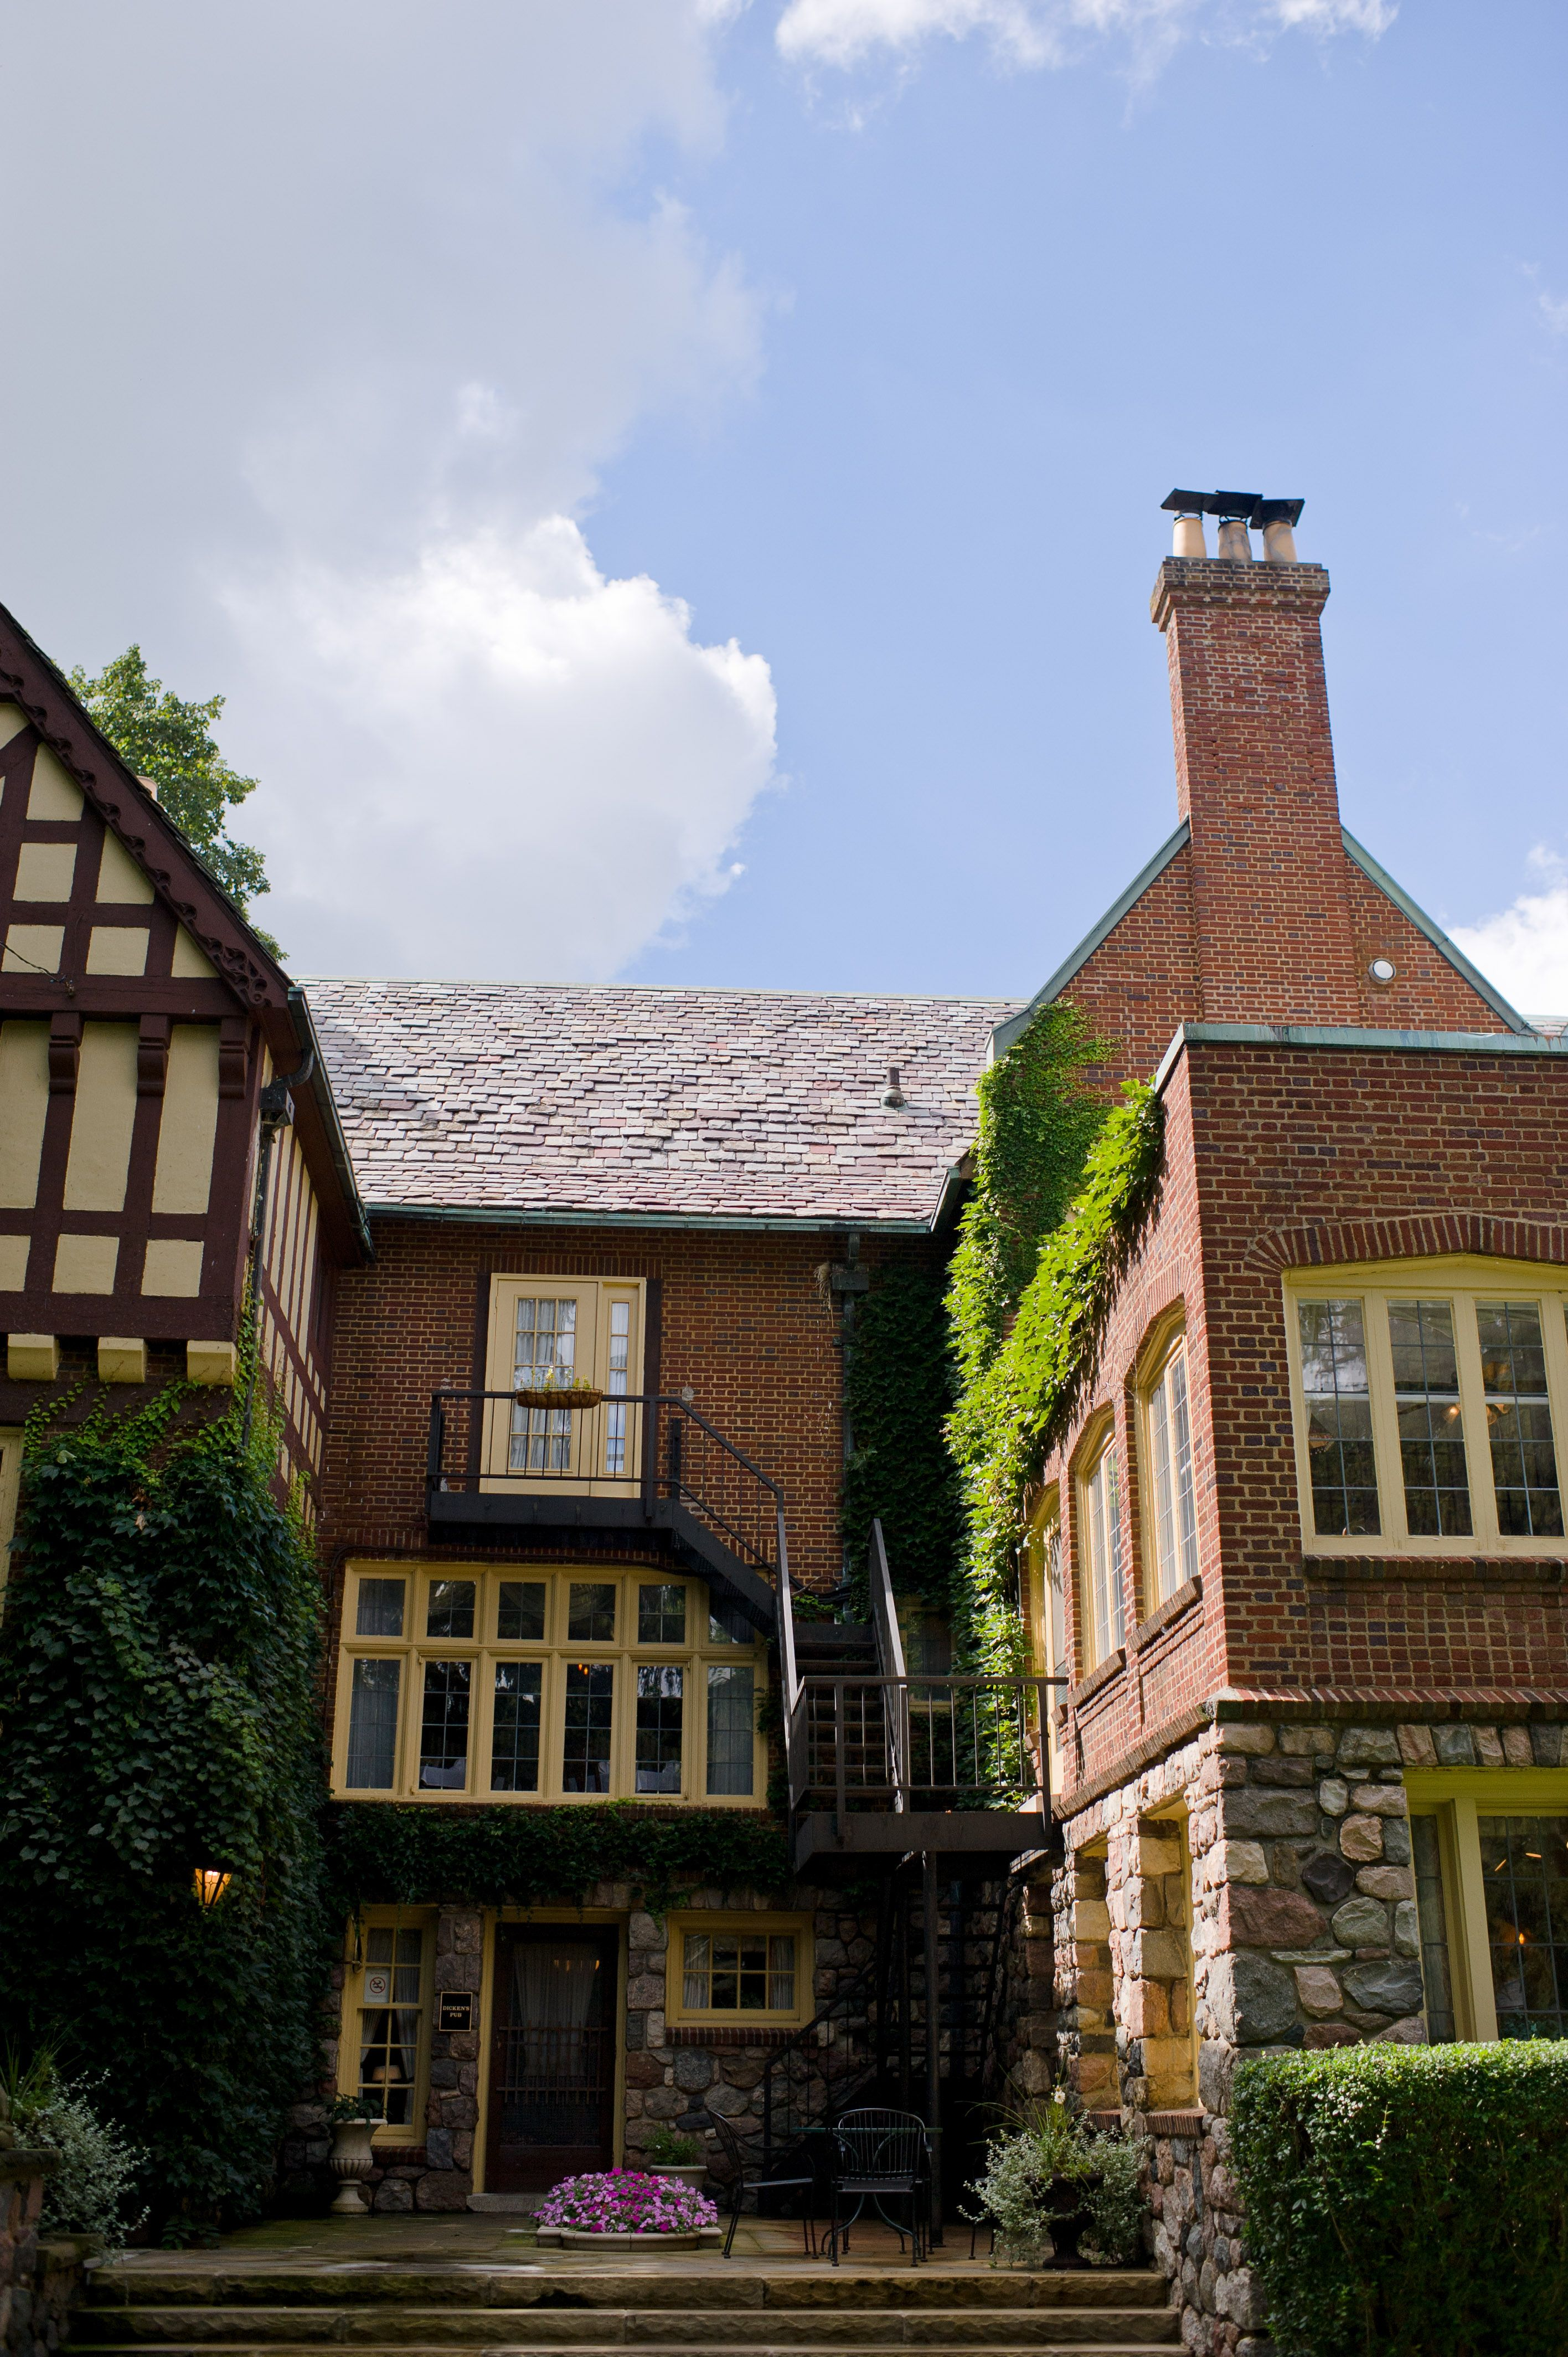 Great Food And A Great Wedding Venue In The Historic English Inn